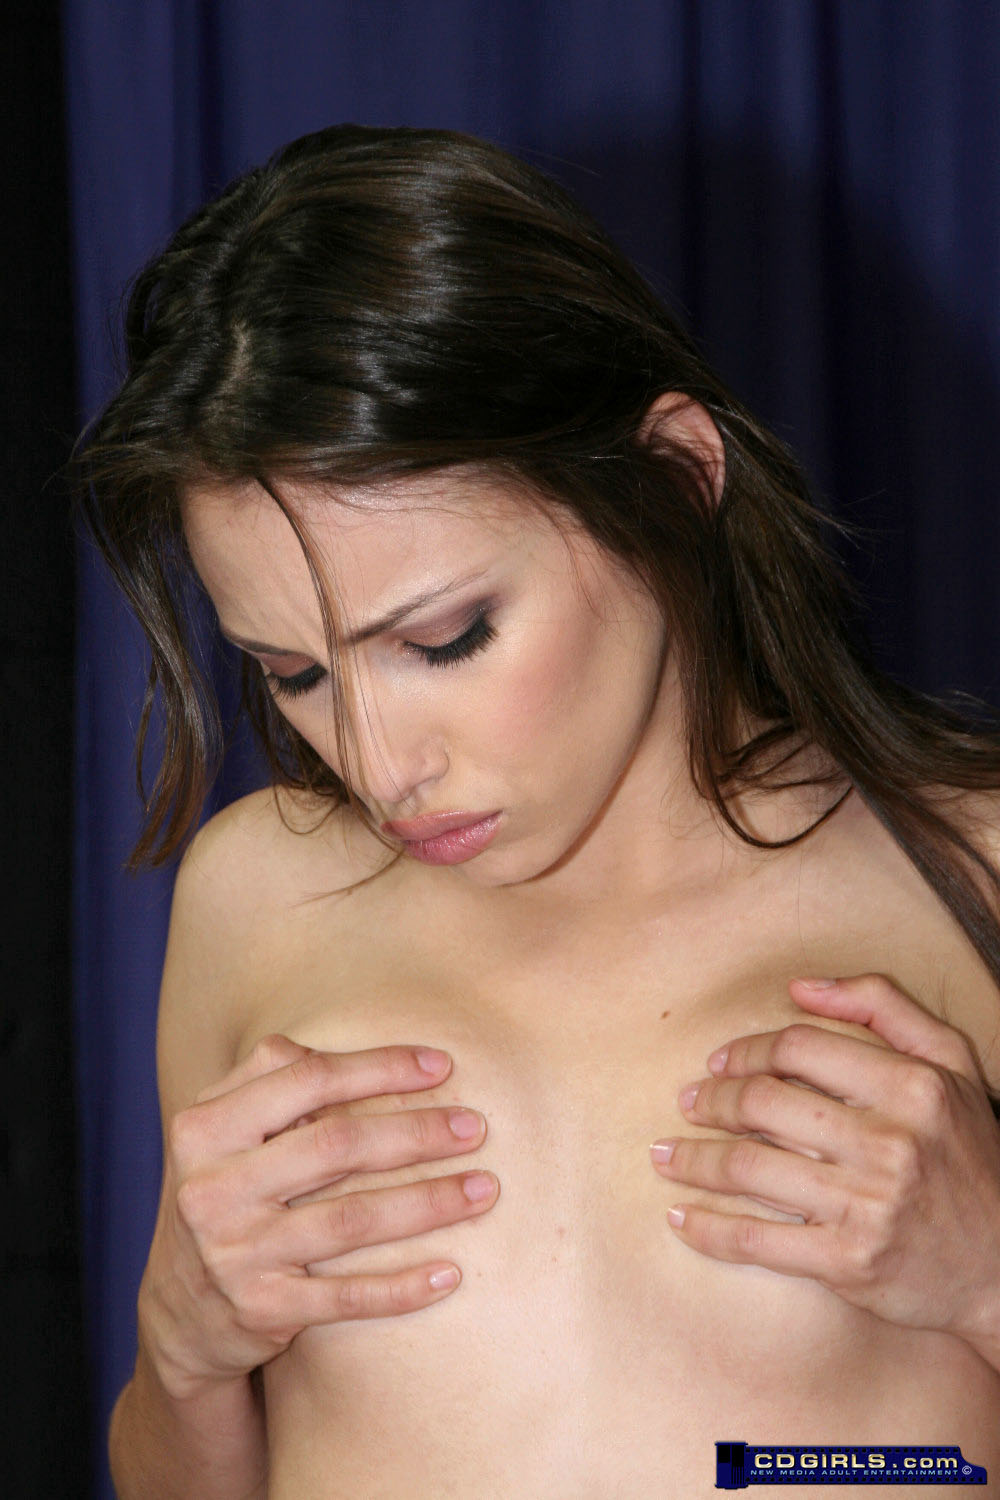 Celeste's orgasm filled Sybian ride image #4